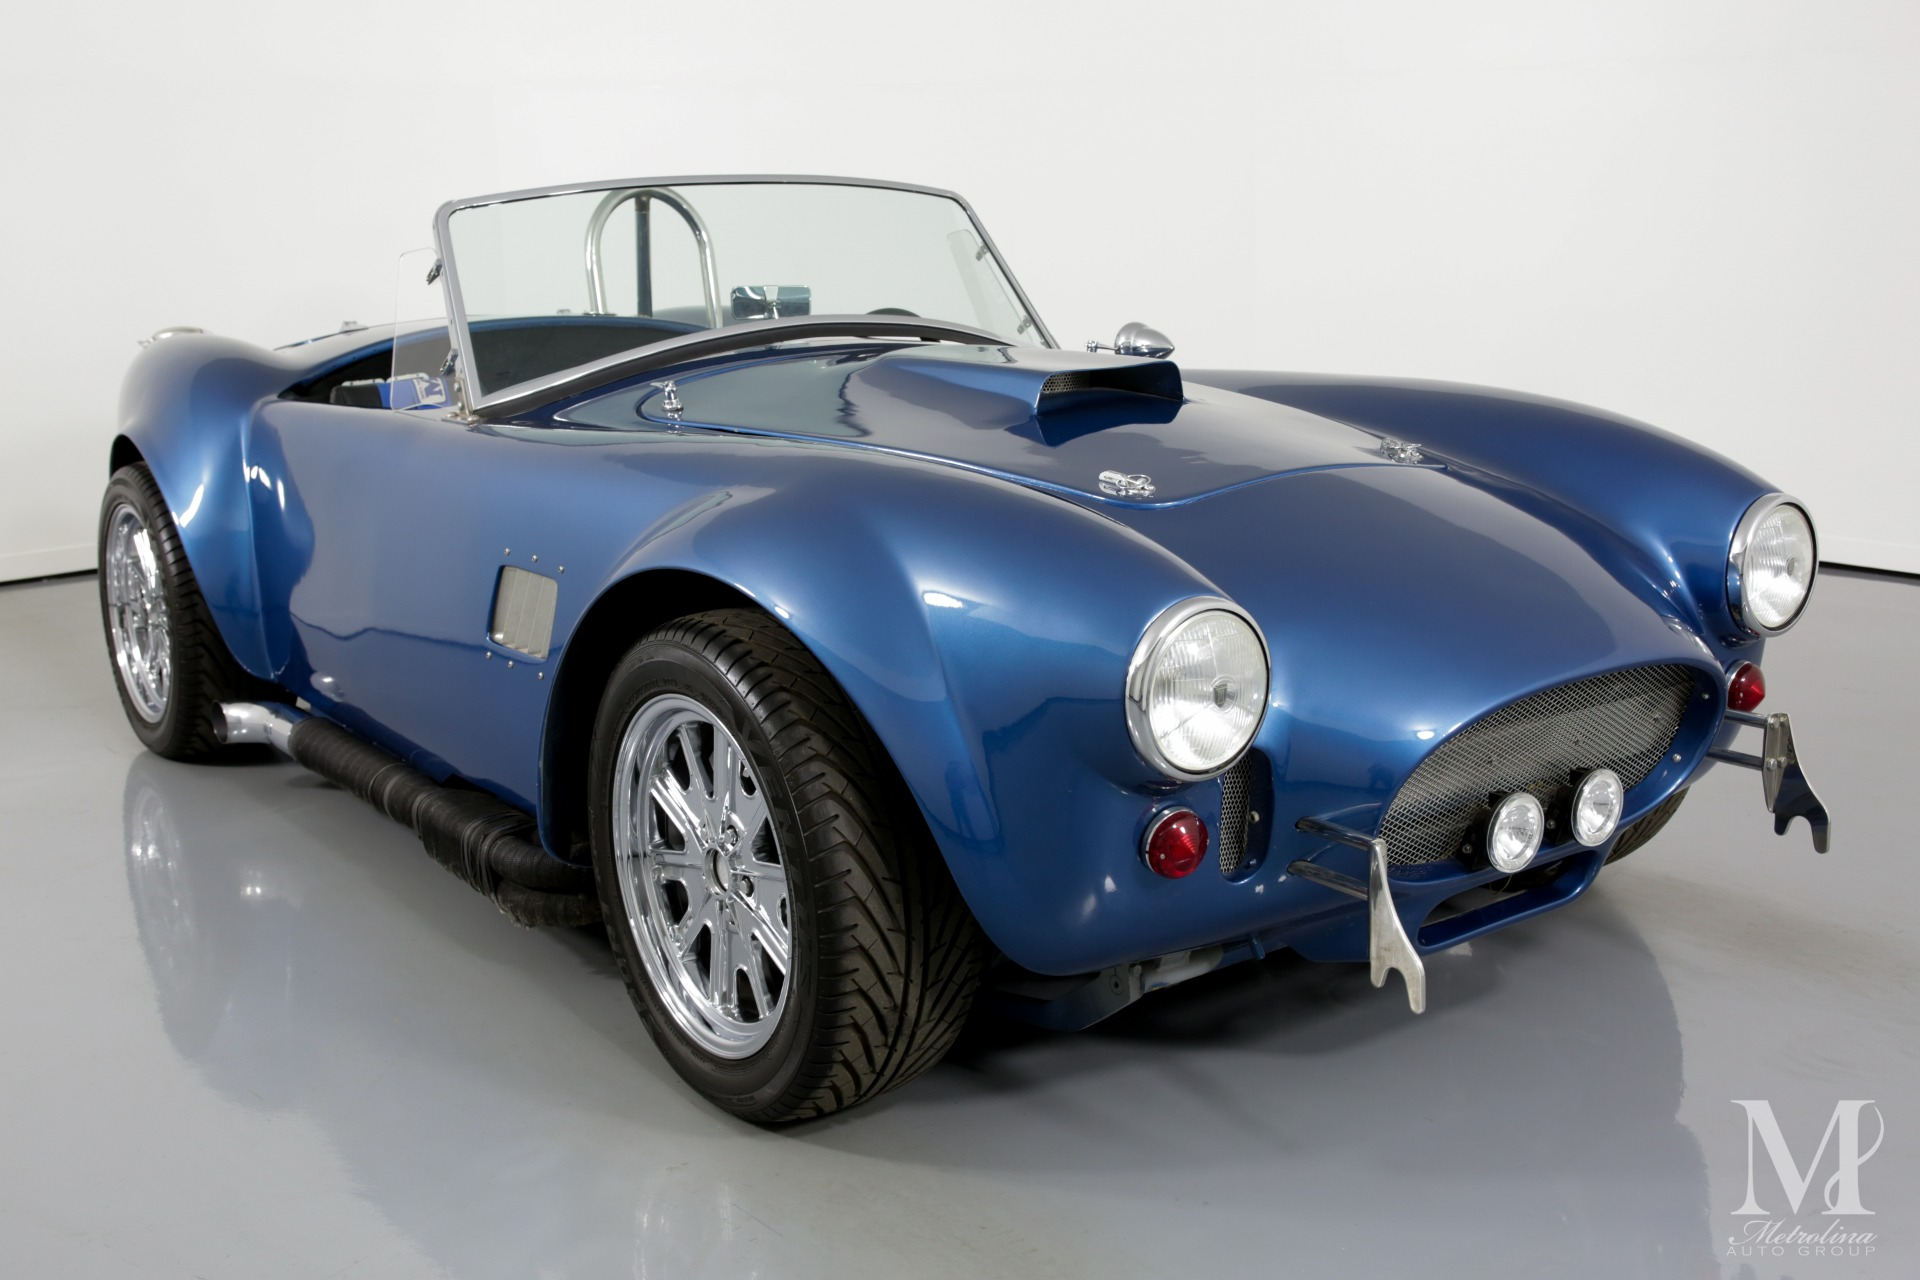 Used 1965 Shelby Cobra KIT CAR for sale $29,996 at Metrolina Auto Group in Charlotte NC 28217 - 2